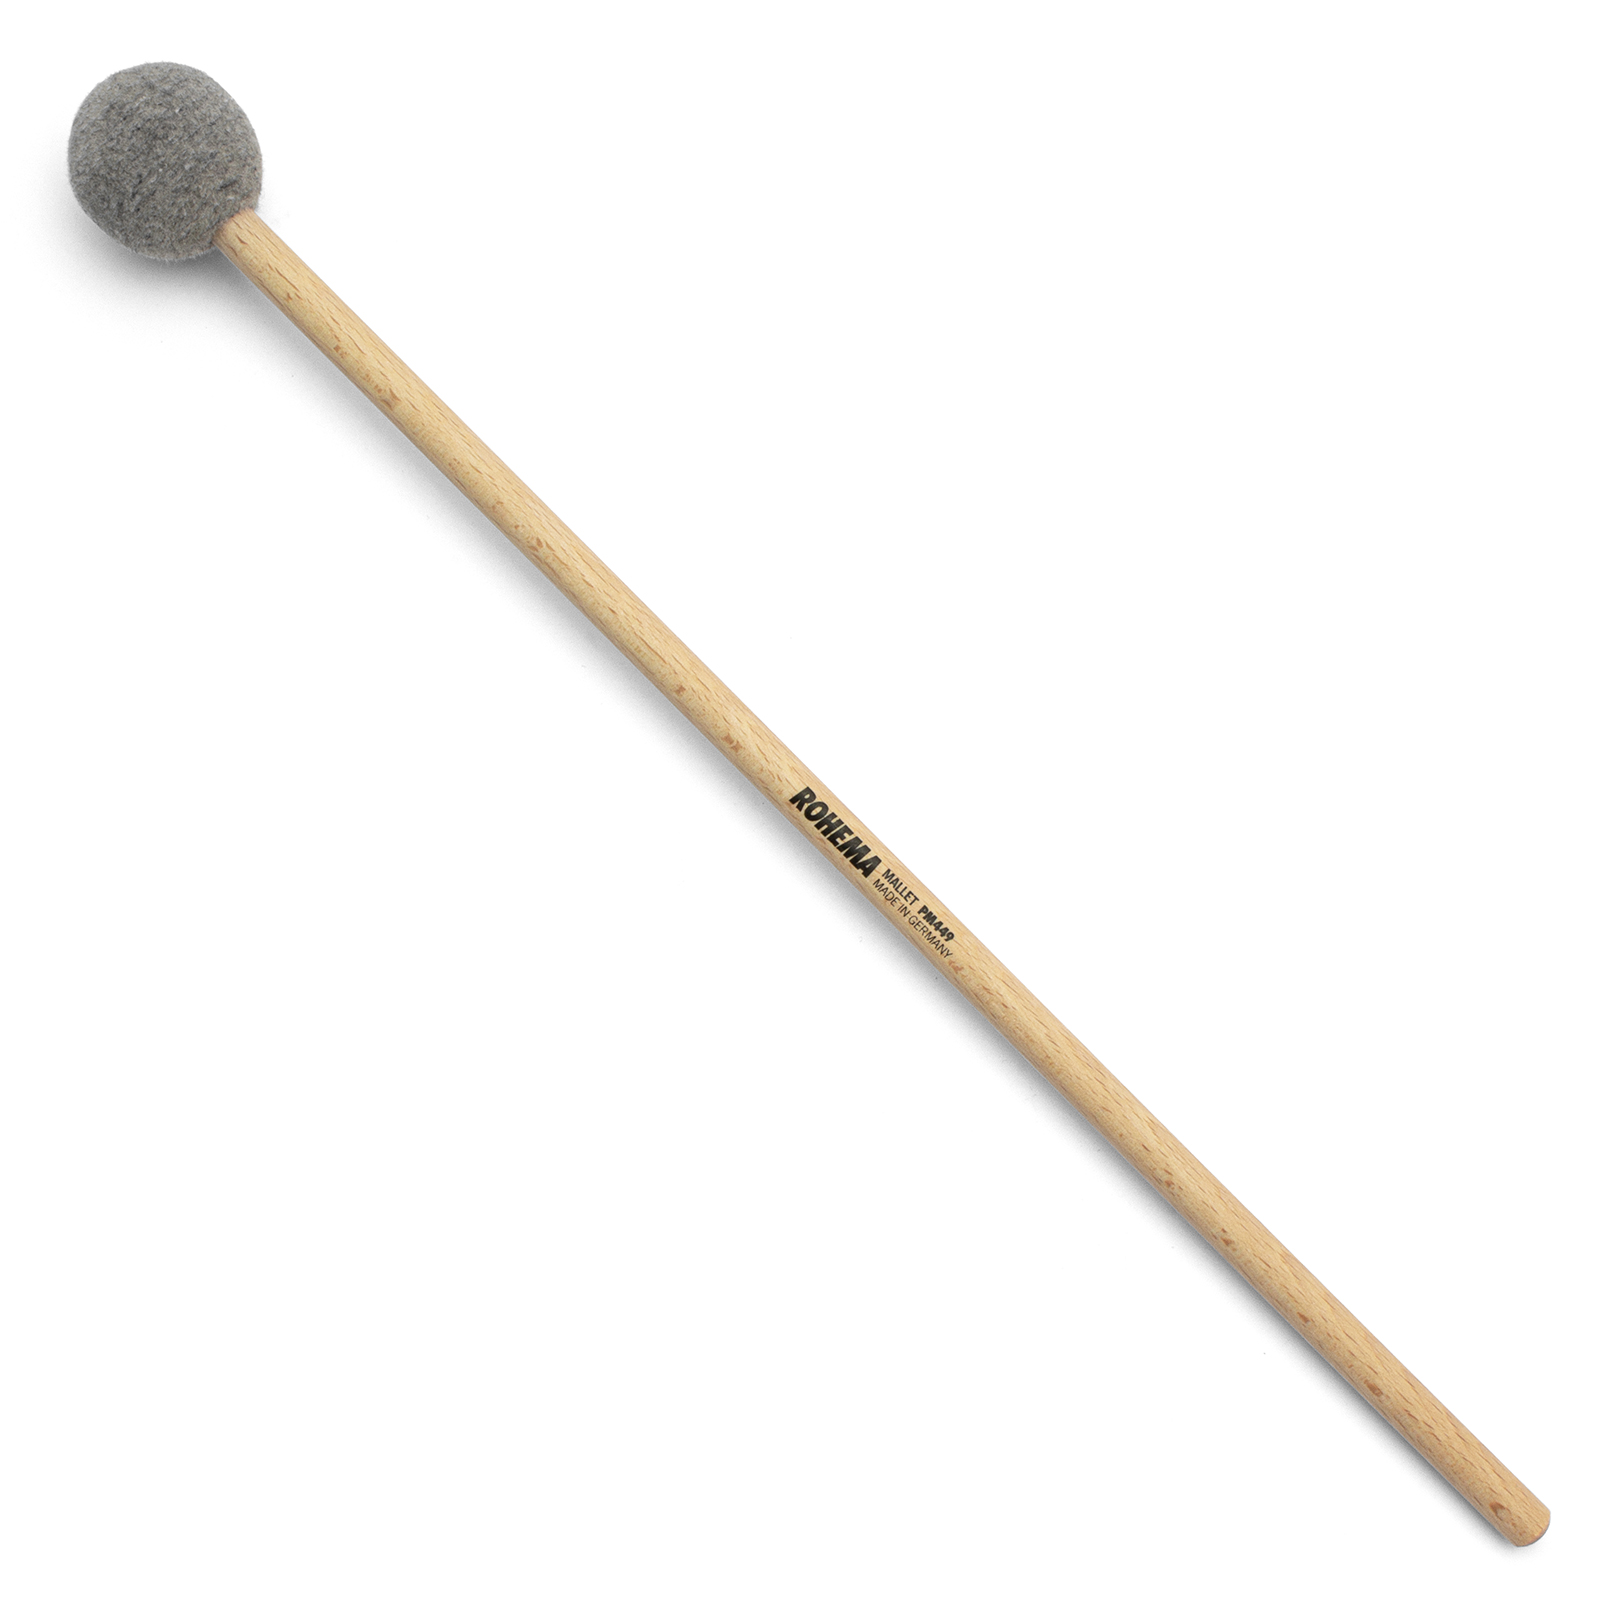 BEECH MALLET 39CM - FELT HEAD 3.5CM MEDIUM HARD